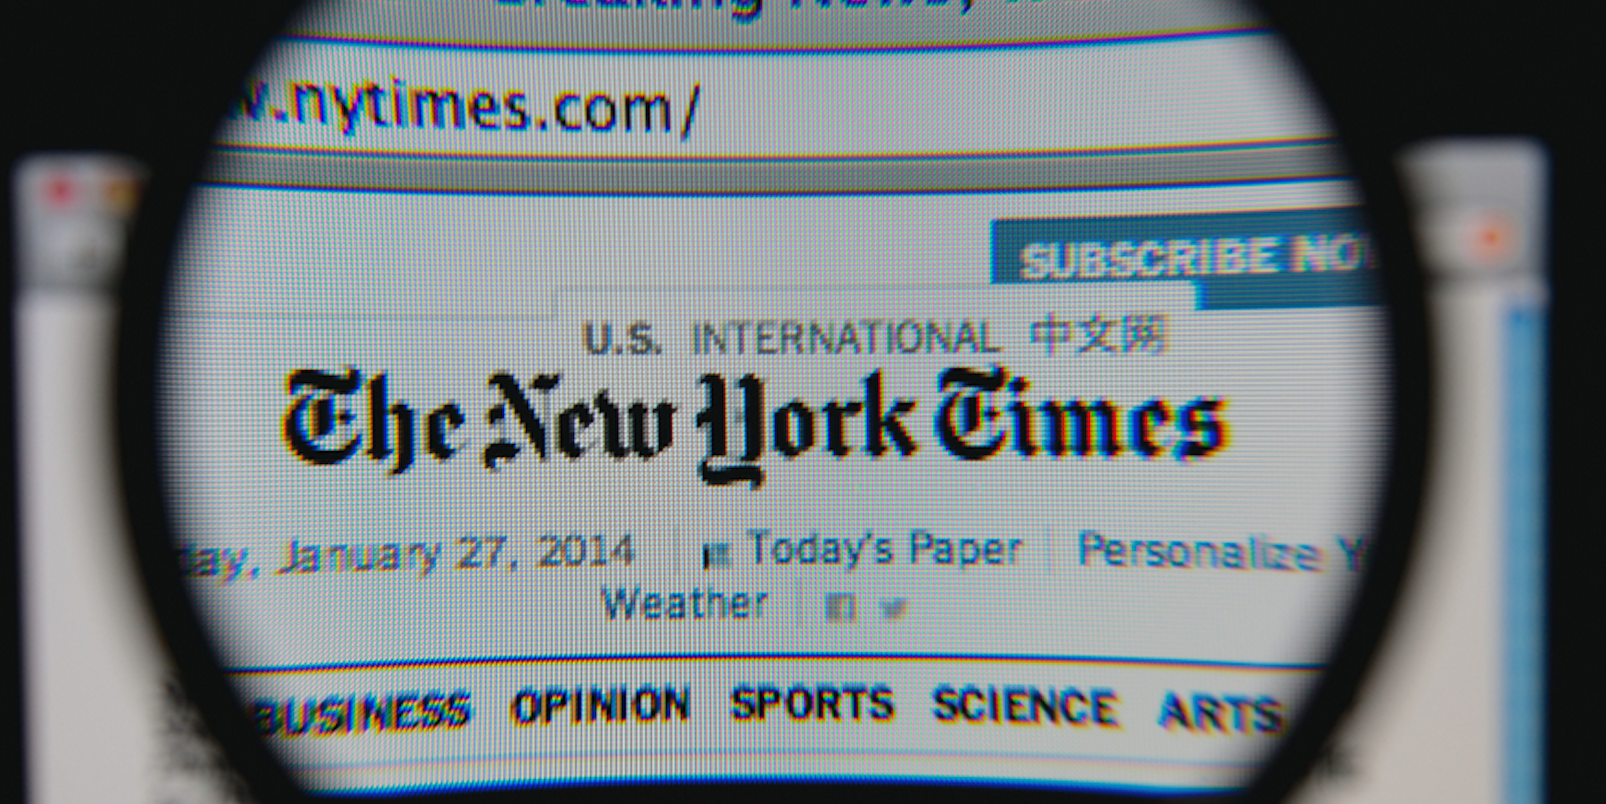 Don't miss the science section published each Tuesday. The New York Times gives you great stories in depth from around the world. It is the detailed stories and some investigative stories that you can't find anyplace else that are so refreshing to read.